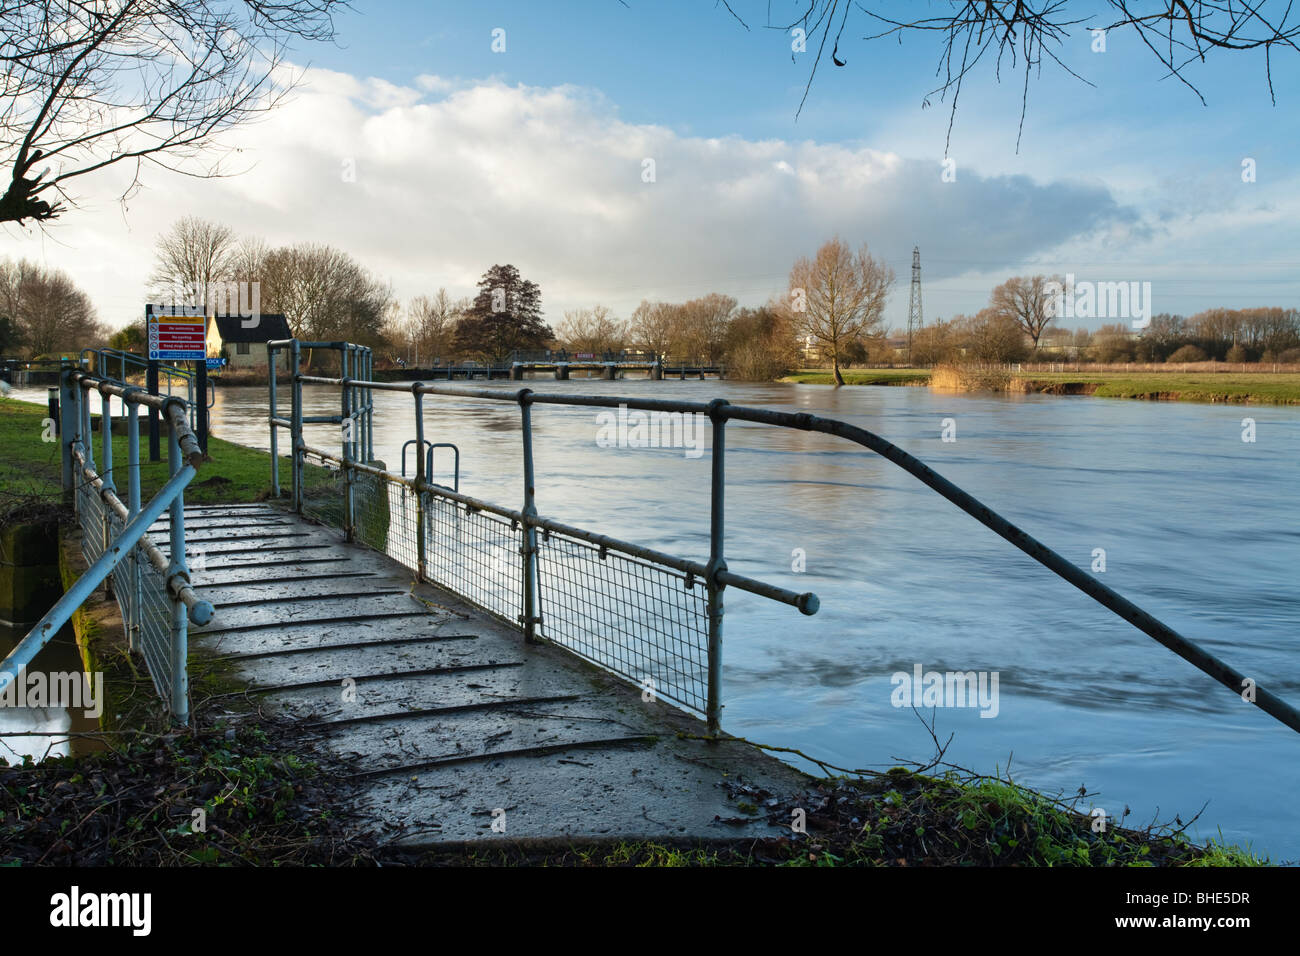 Swinford Weir and Lock on the River Thames, Oxfordshire, Uk - Stock Image